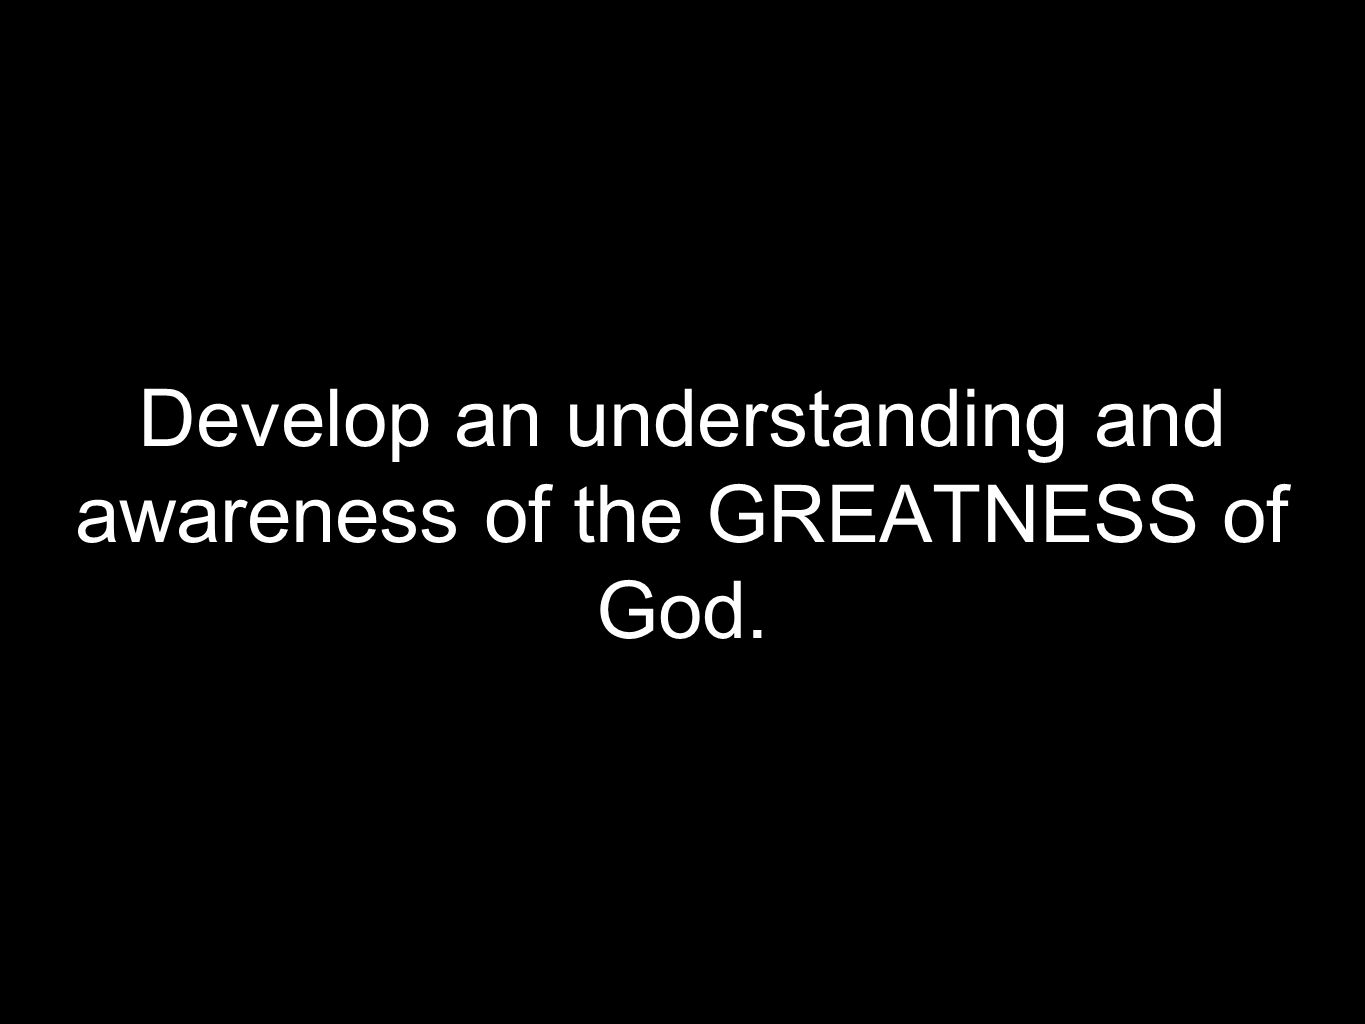 Develop an understanding and awareness of the GREATNESS of God.